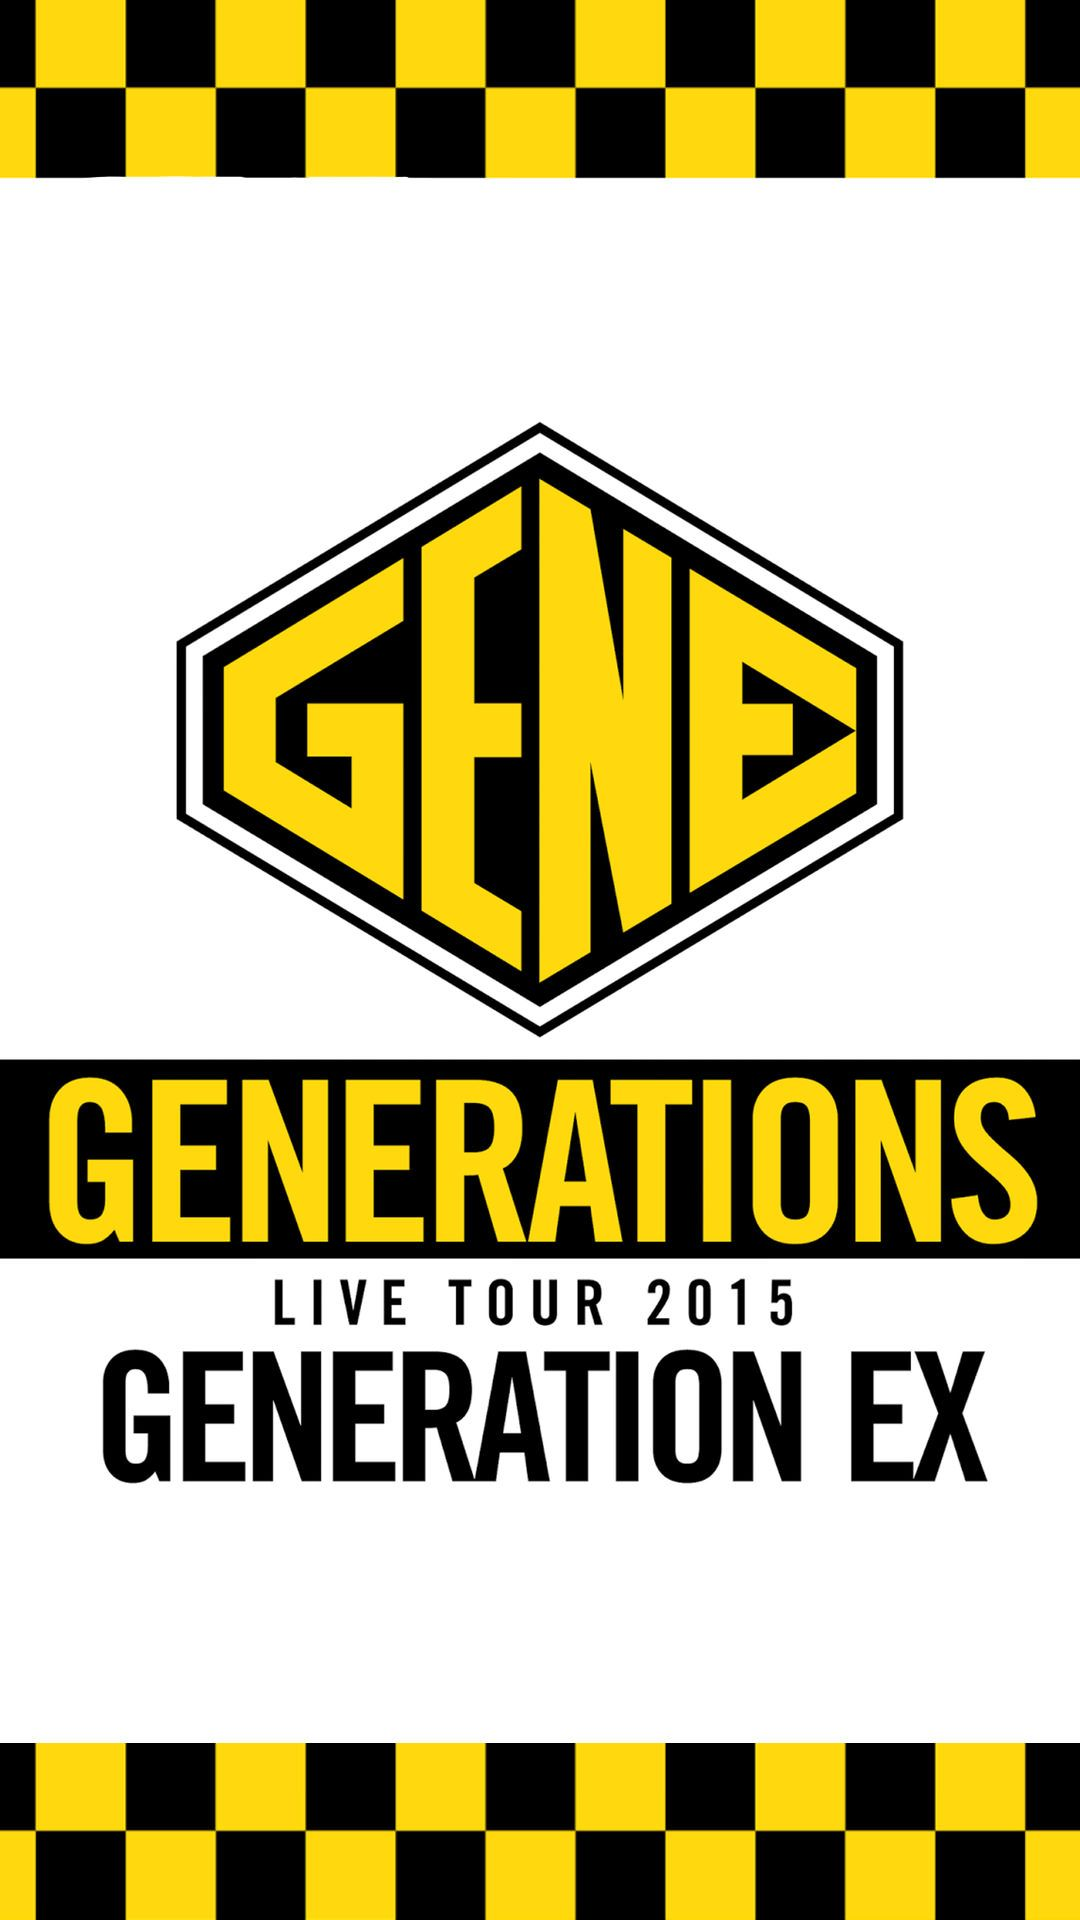 Generations From Exile Tribe Generations ロゴ 壁紙 Iphone壁紙